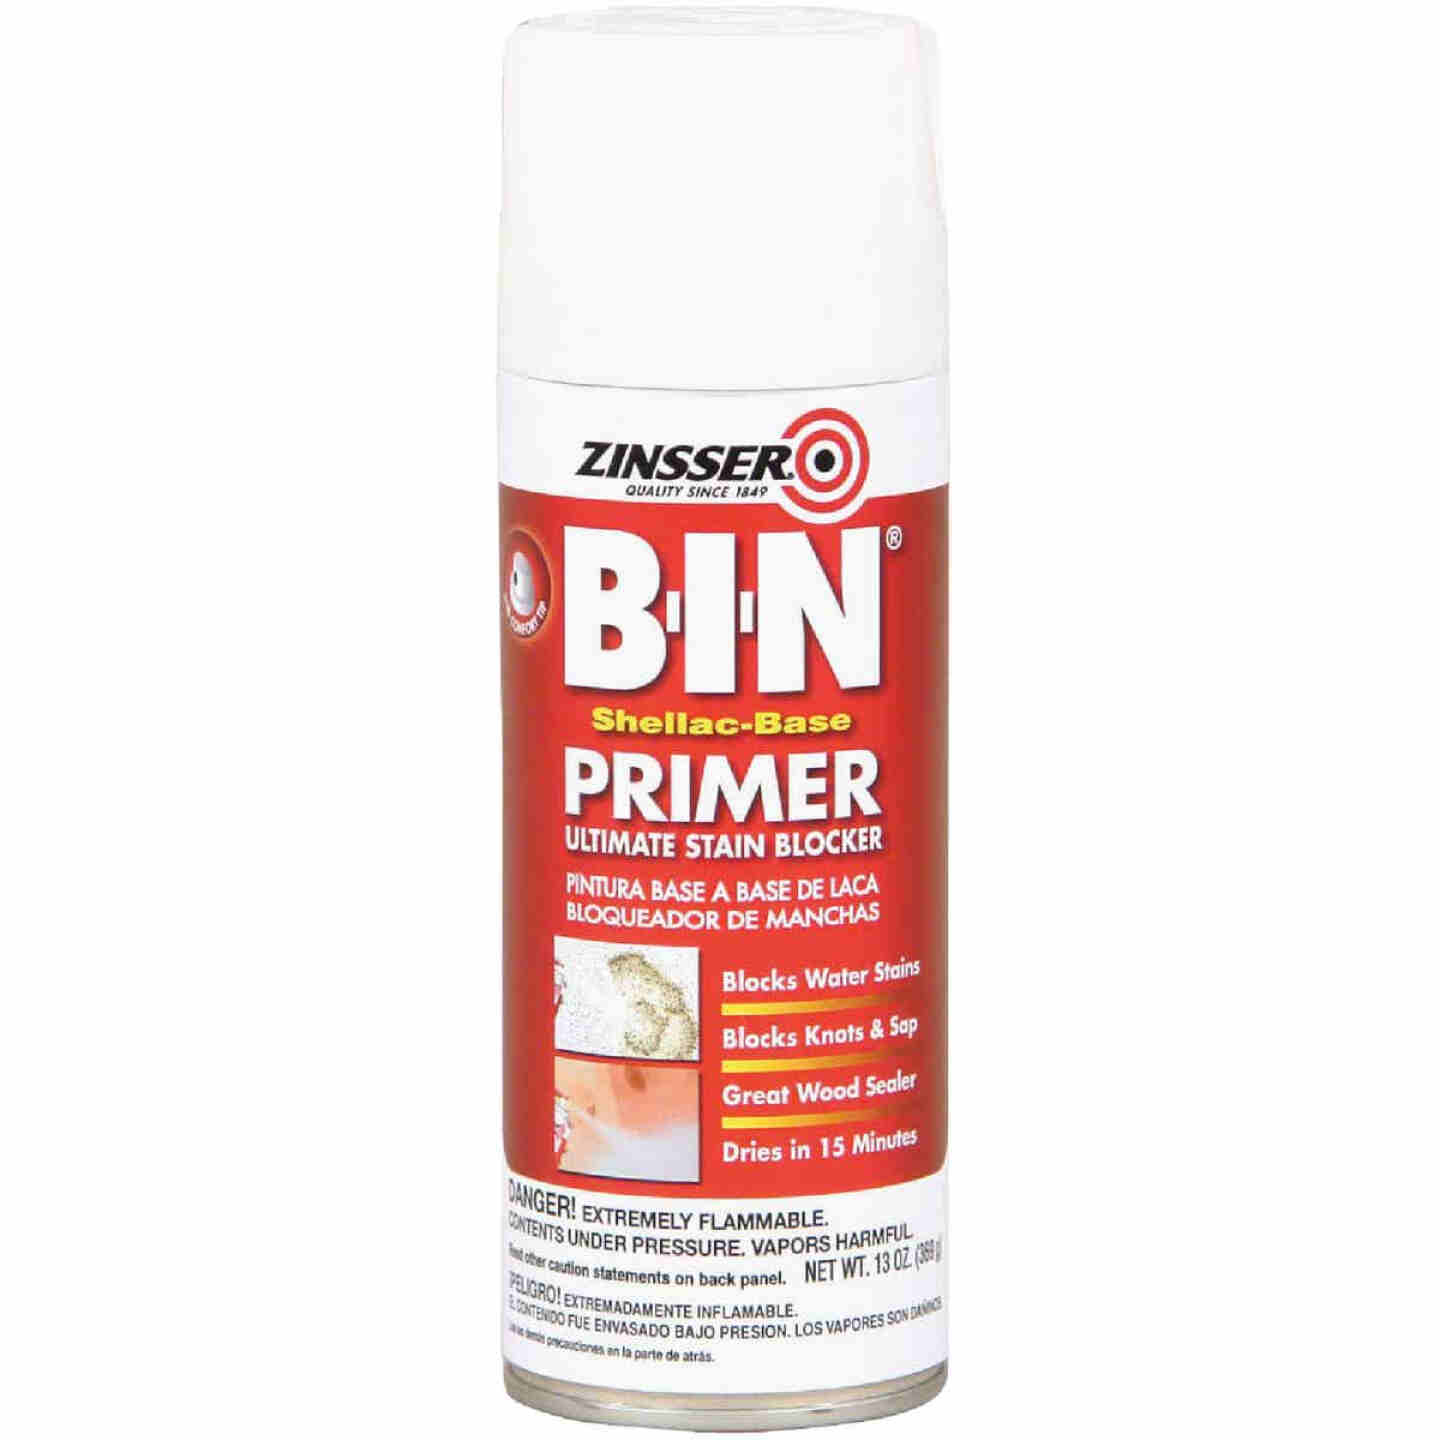 Zinsser B-I-N 13 Oz. Shellac-Base Primer Spray, White Image 1